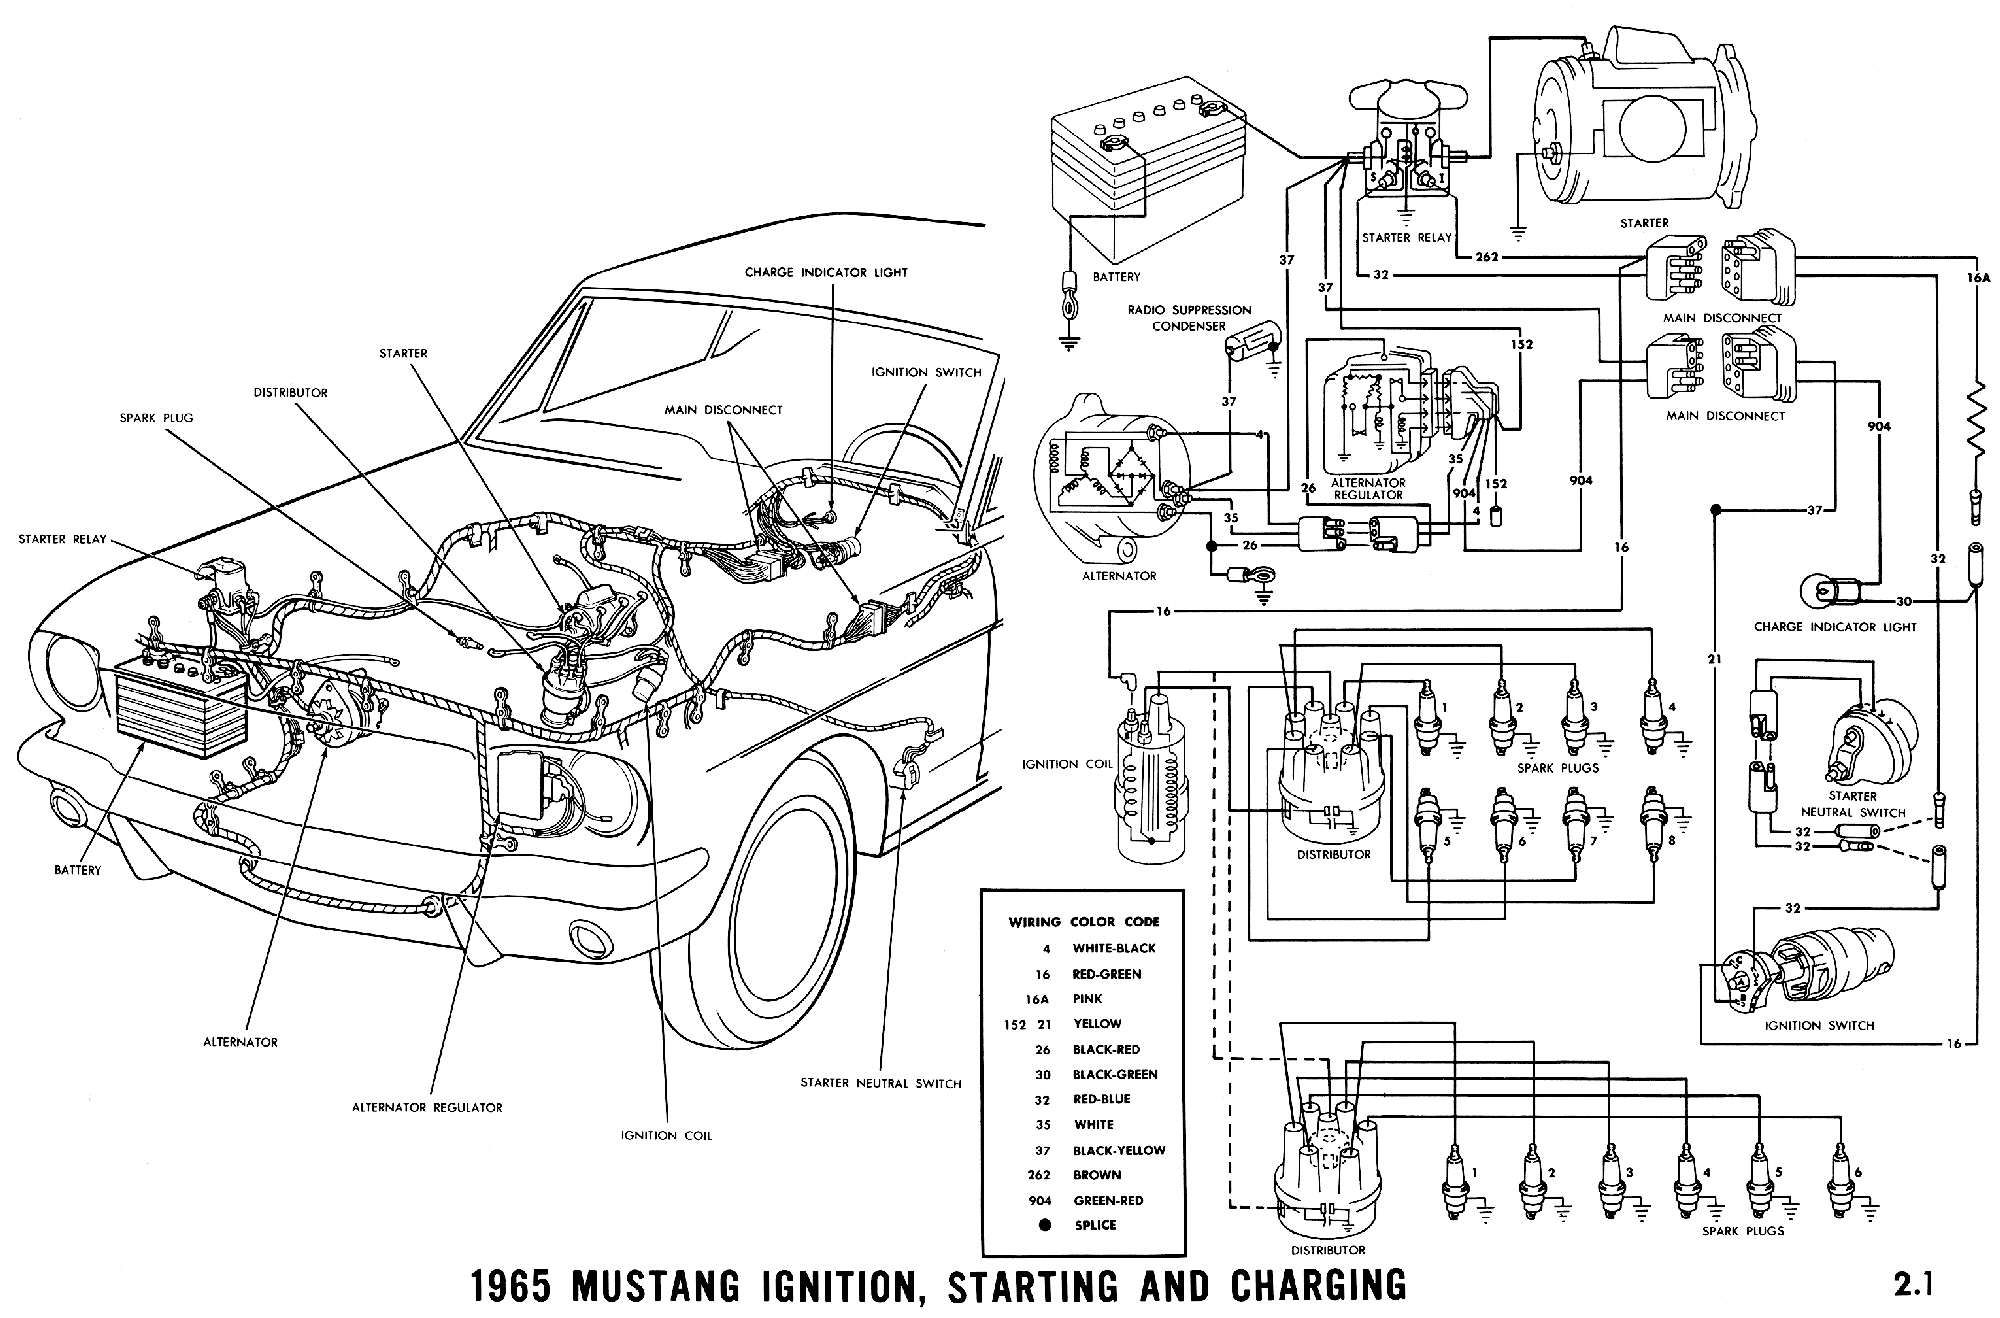 medium resolution of 1965 mustang wiring diagrams mustang 1965 mustang mustang basic ignition wiring diagram 1965 mustang